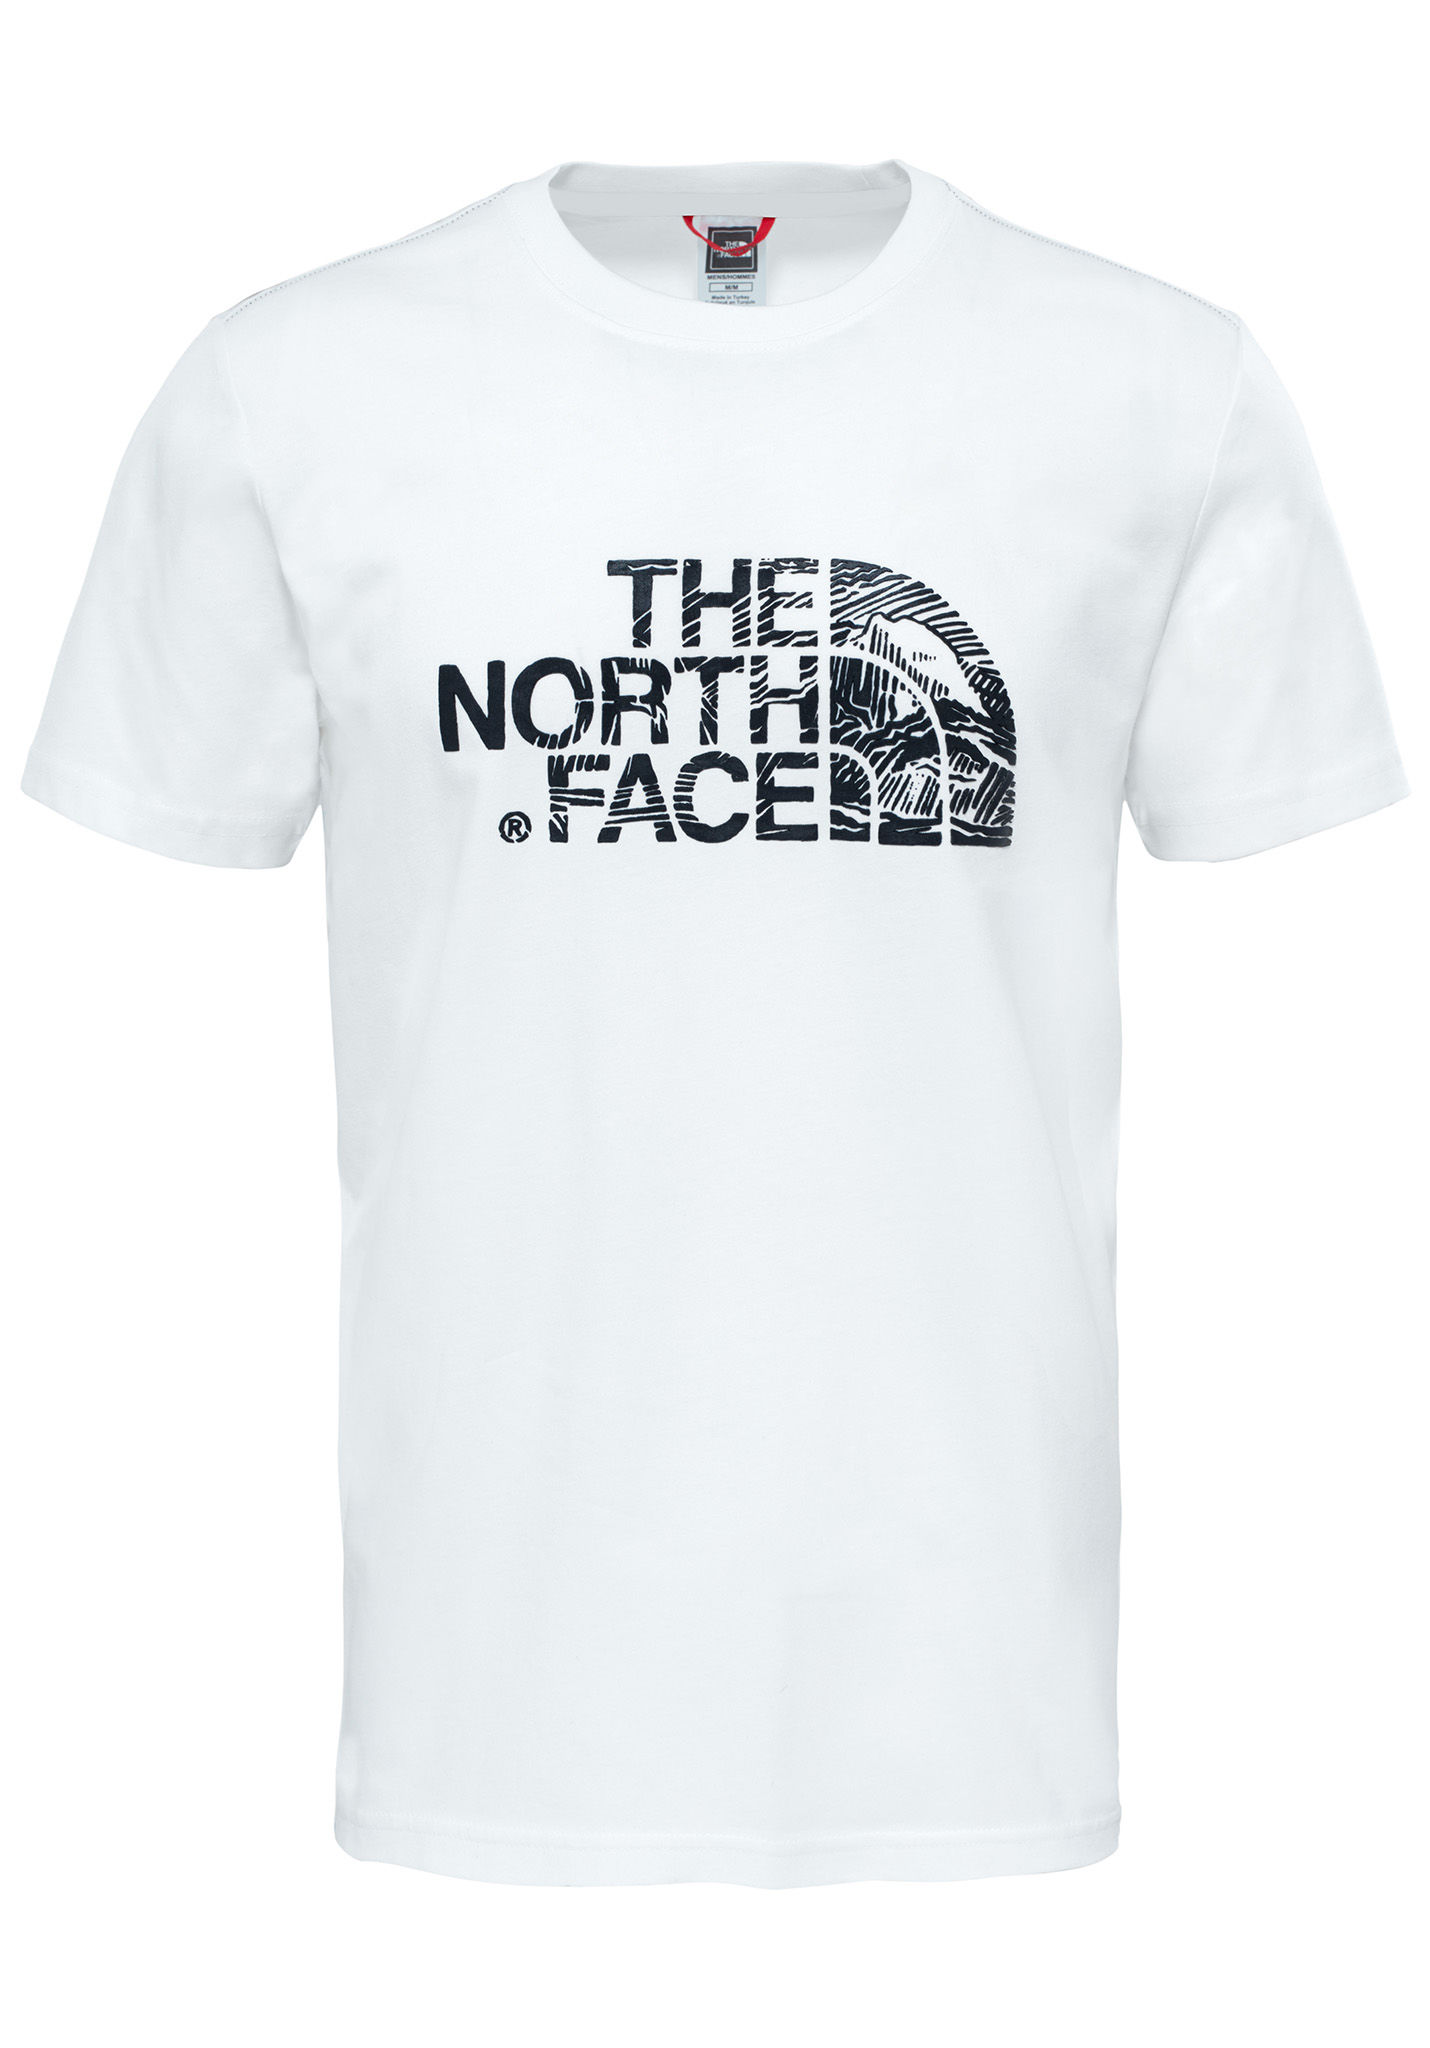 cb72820f1 THE NORTH FACE Woodcut Dome - T-Shirt for Men - White